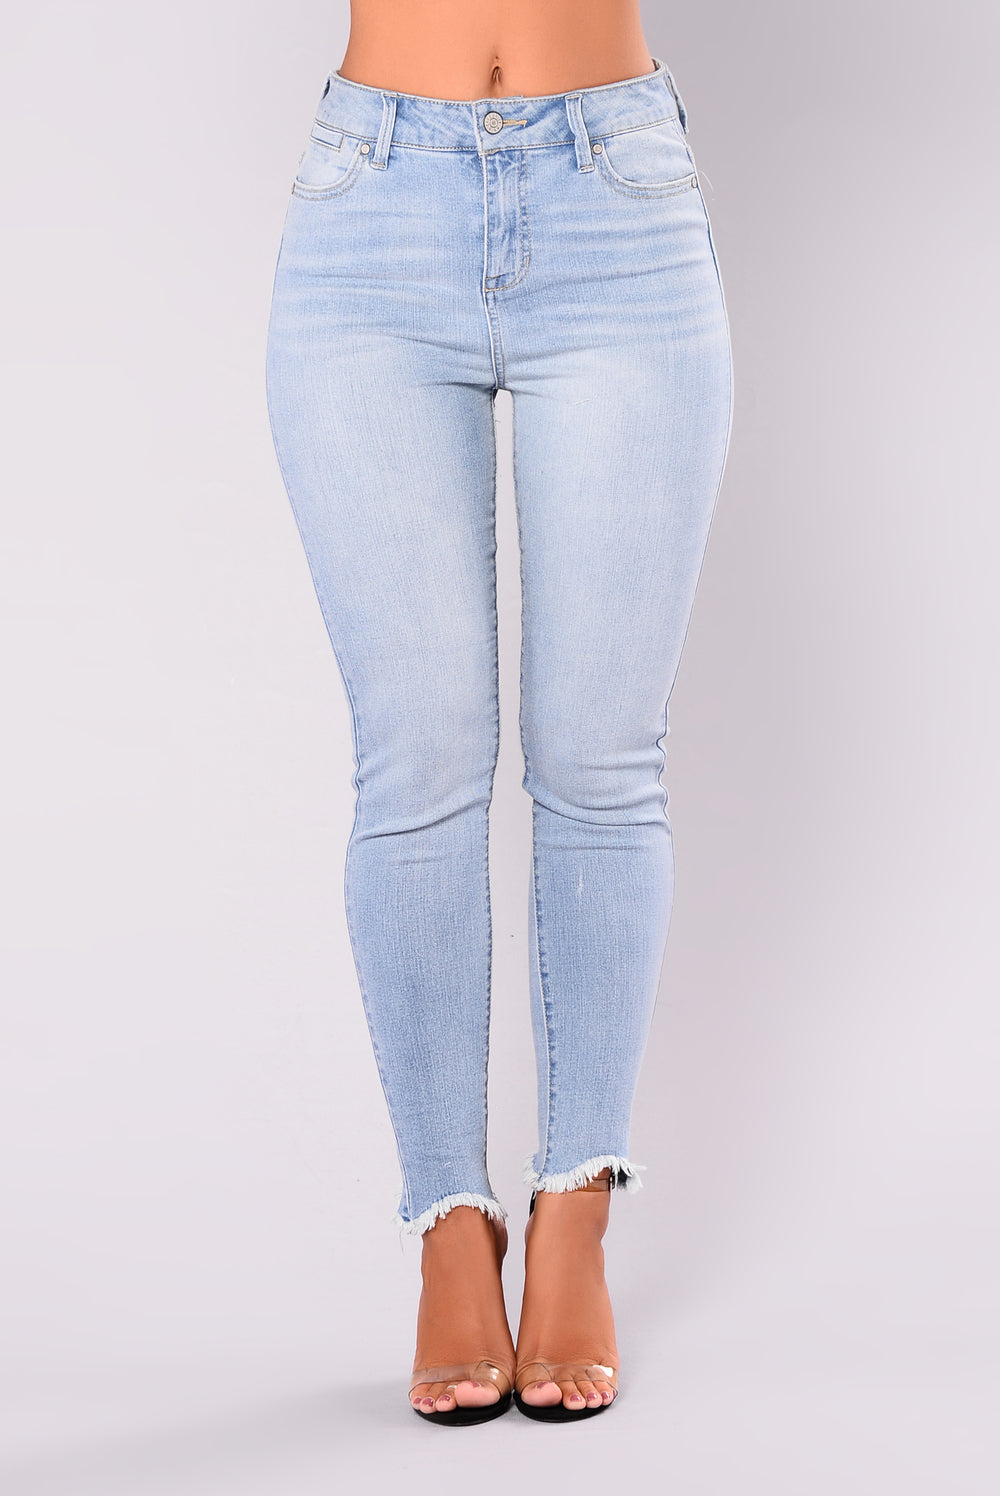 Russian Roulette Ankle Jeans - Light Blue Wash